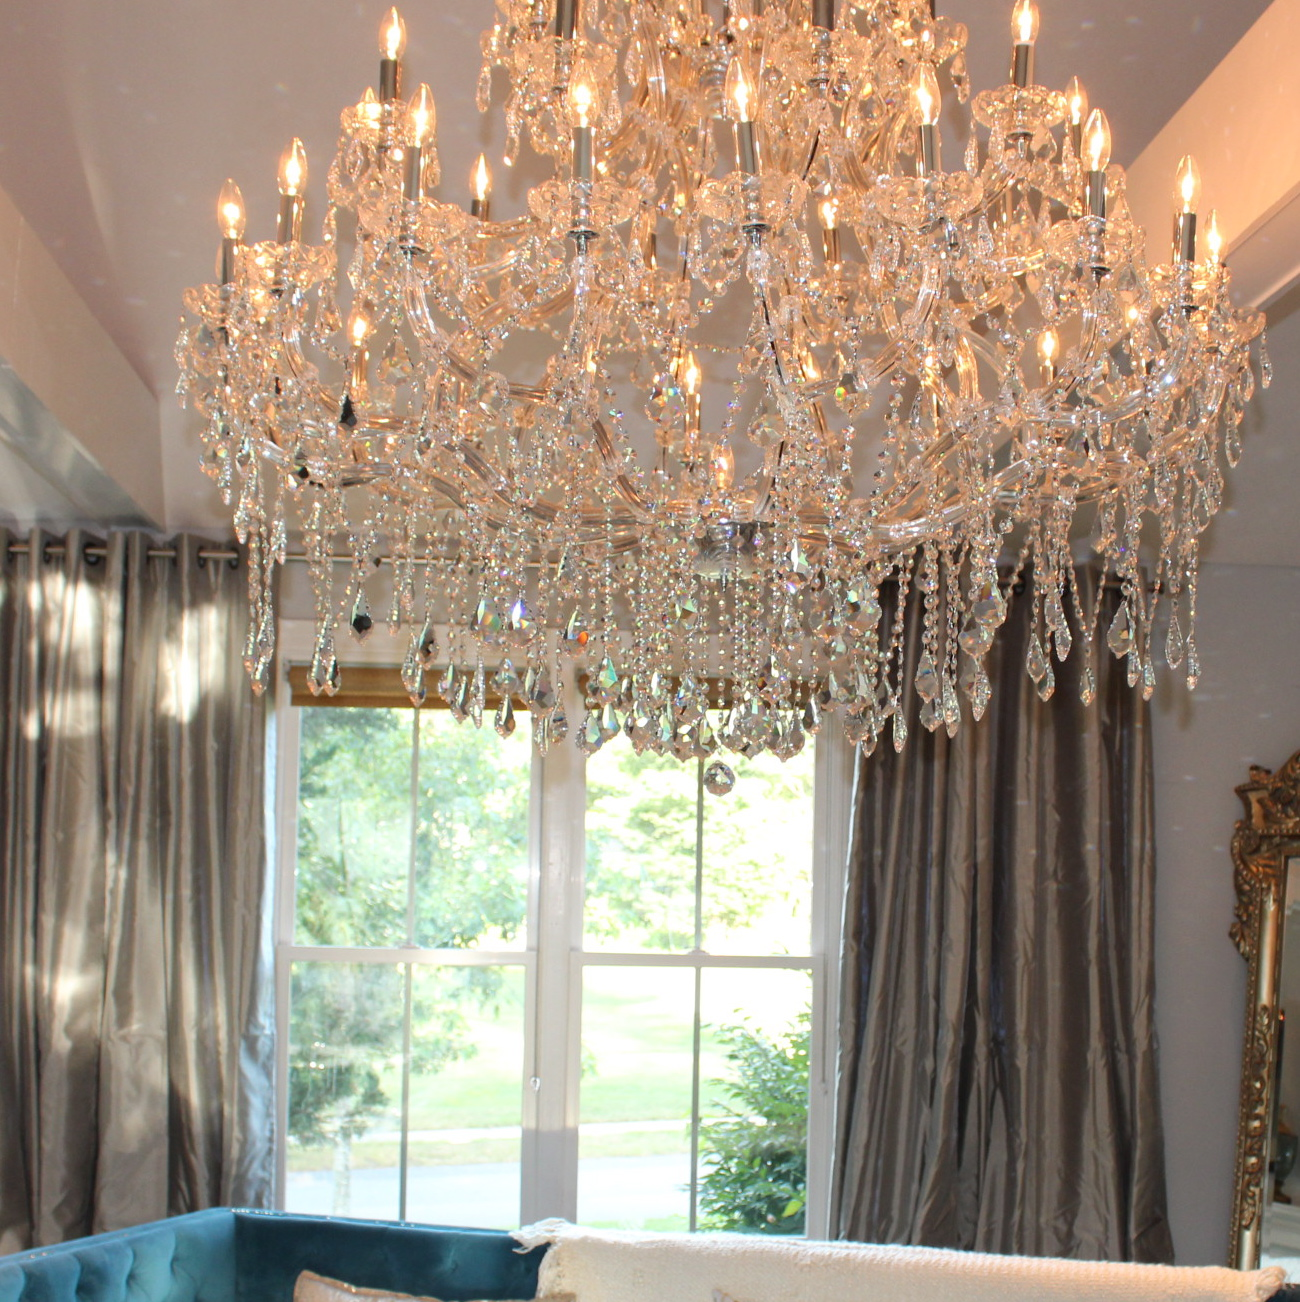 House updates new family room chandelier south shore honestly how did i miscount my windows there are only four so its kind of embarrassing although the larger windows have two panels per side arubaitofo Image collections